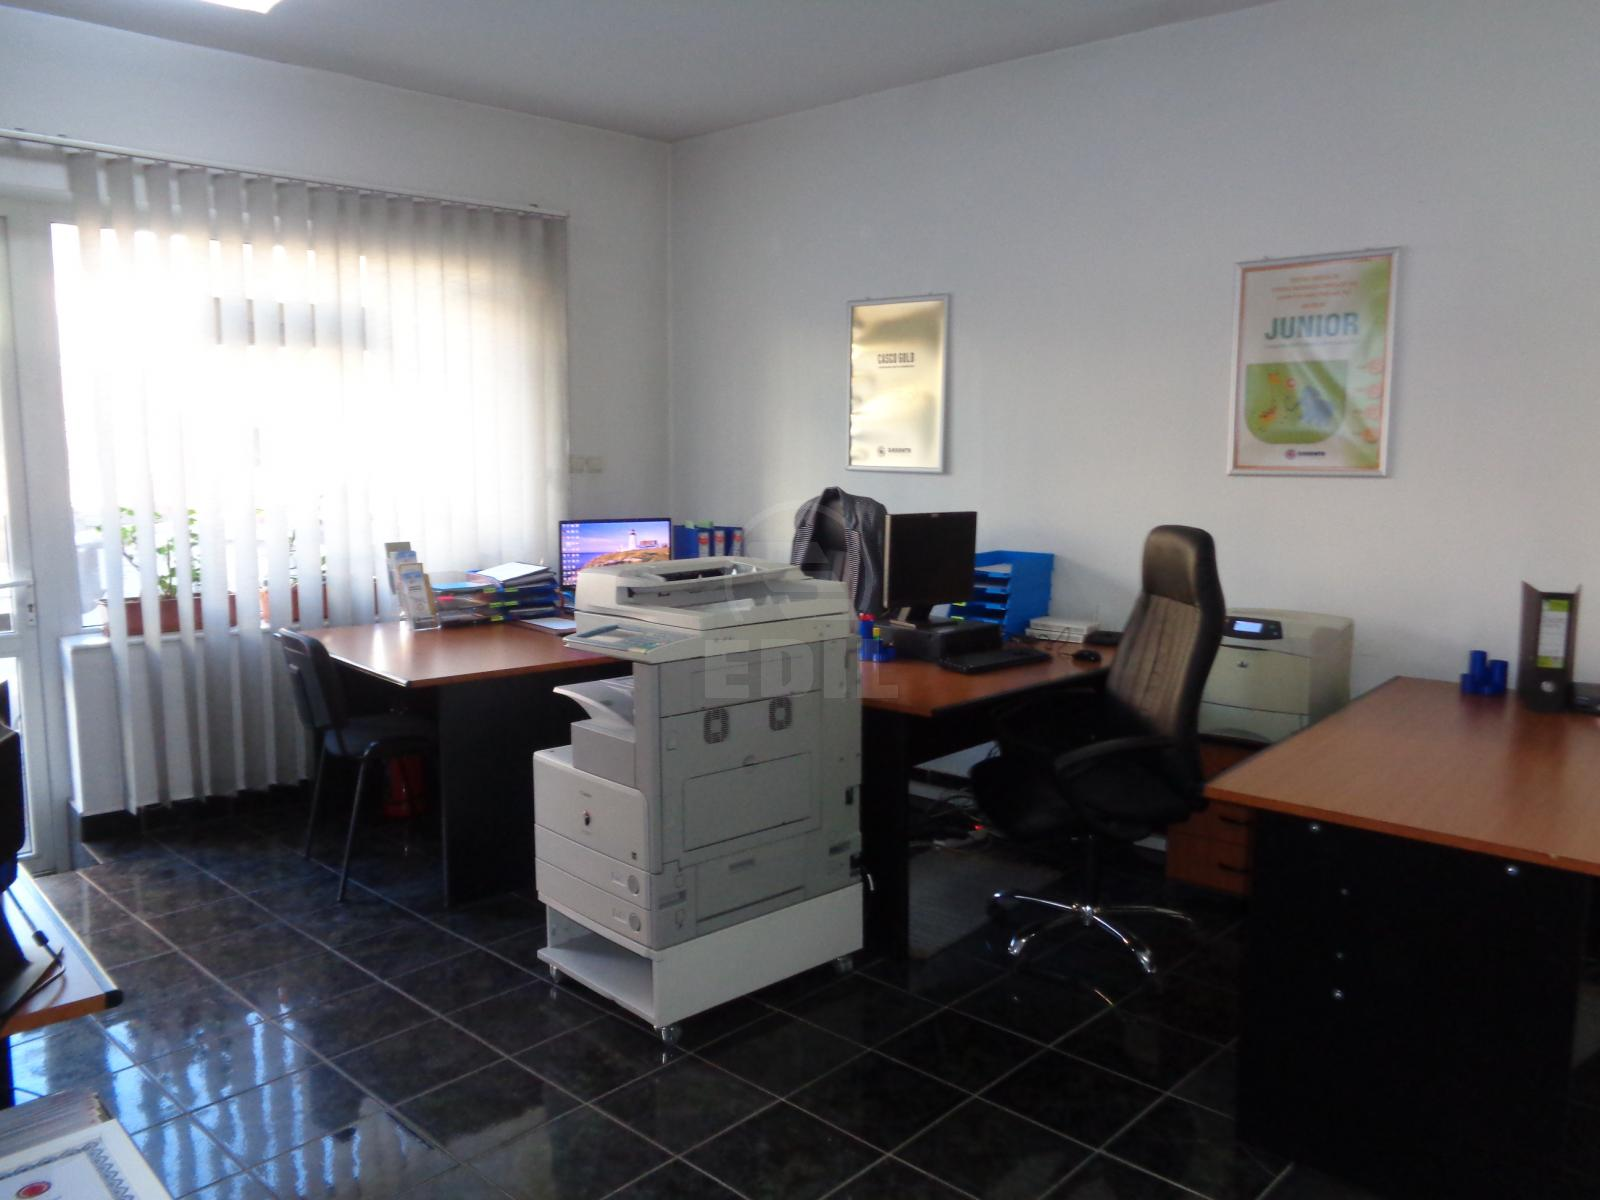 Commercial space for rent 3 rooms, SCCJ271854-2